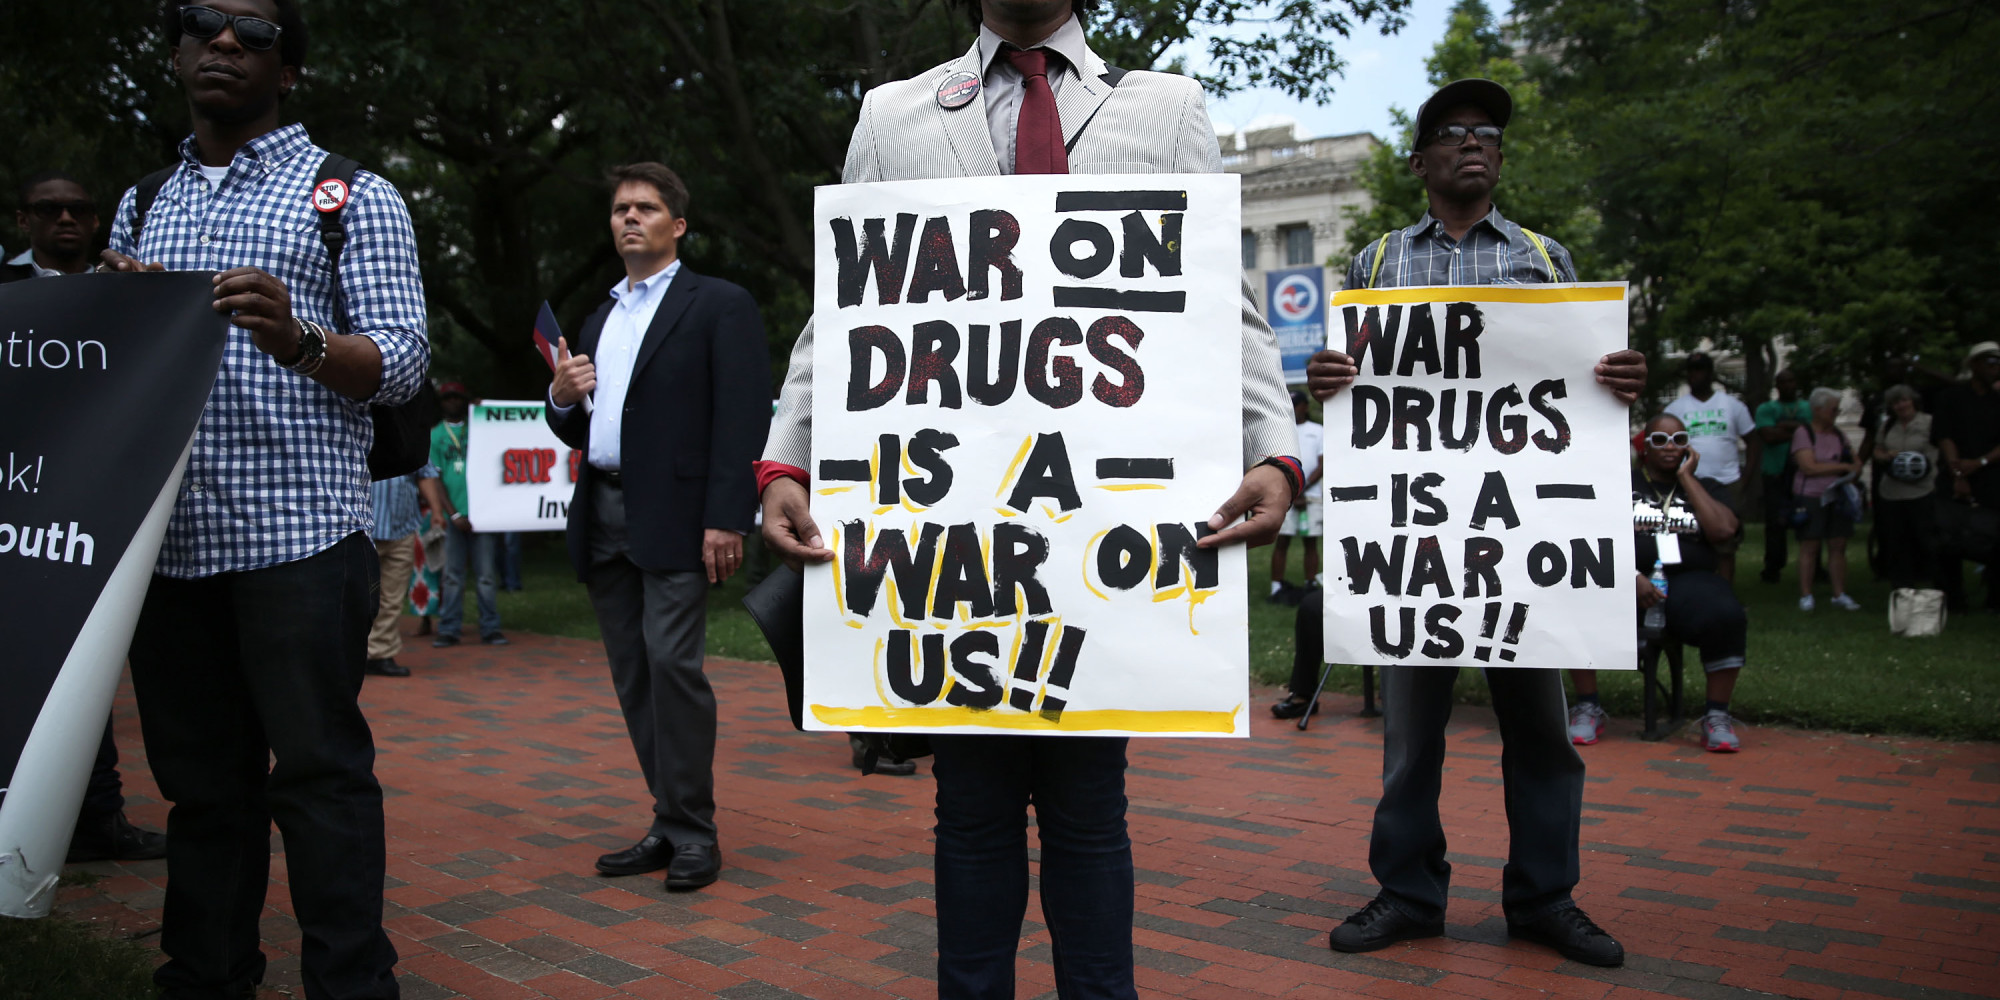 bush declared an all out war on drugs Bush held up bag of crack said to be bought in front of white house, turned out drug seller was set up for the speech bush's crack speech defined america's punitive drug war approach of 80s & 90s.